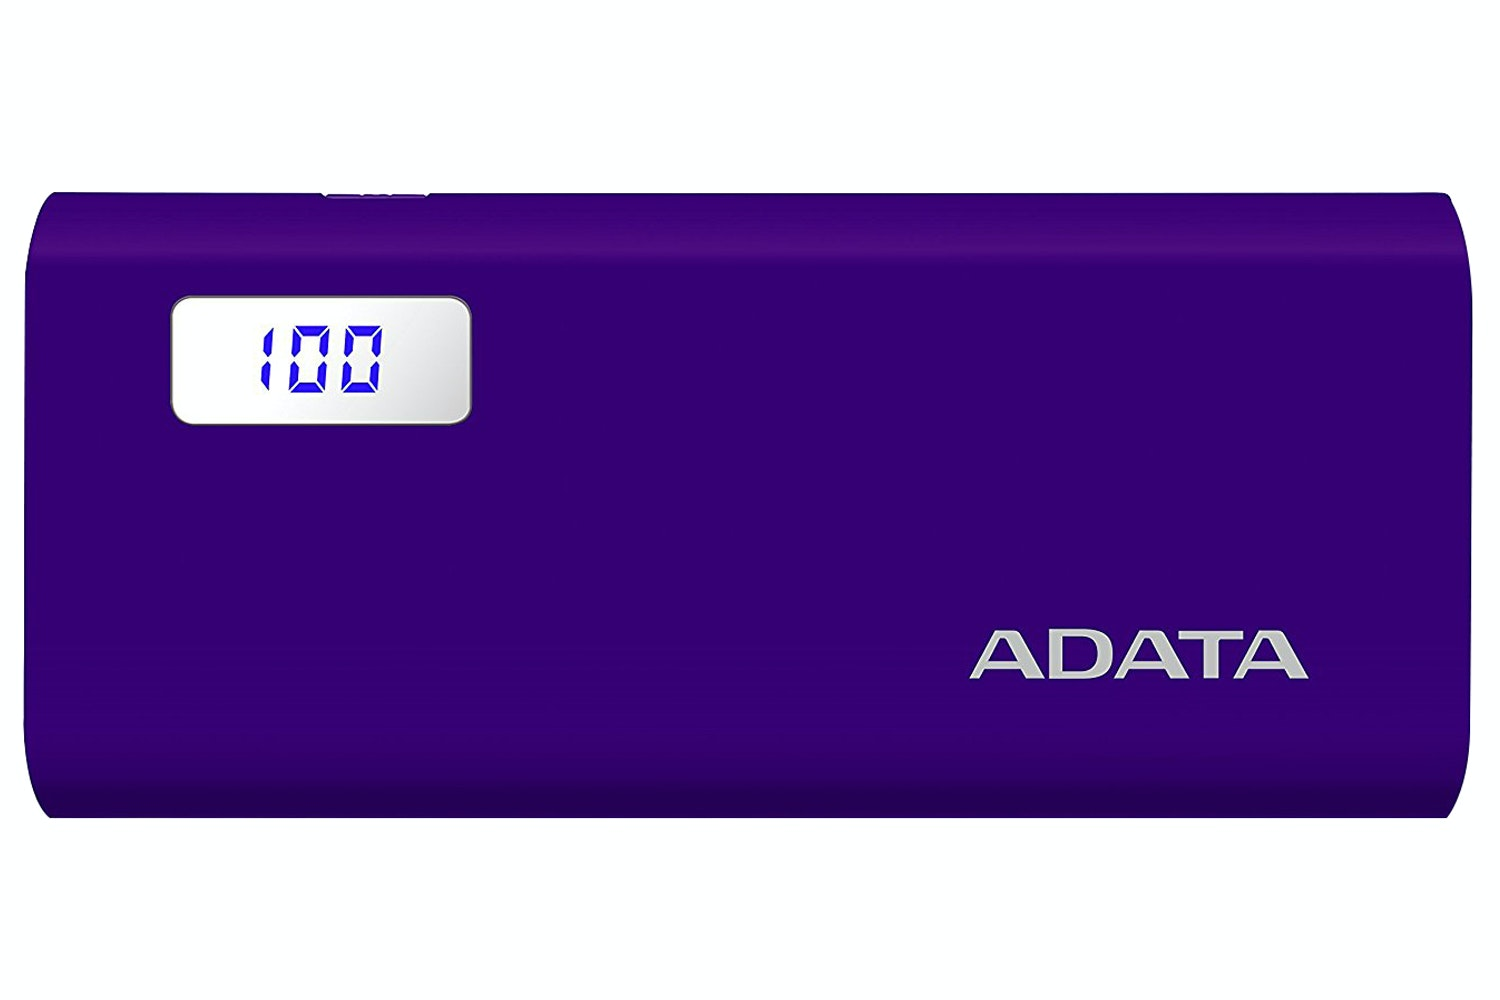 ADATA P12500D Power Bank | Purple